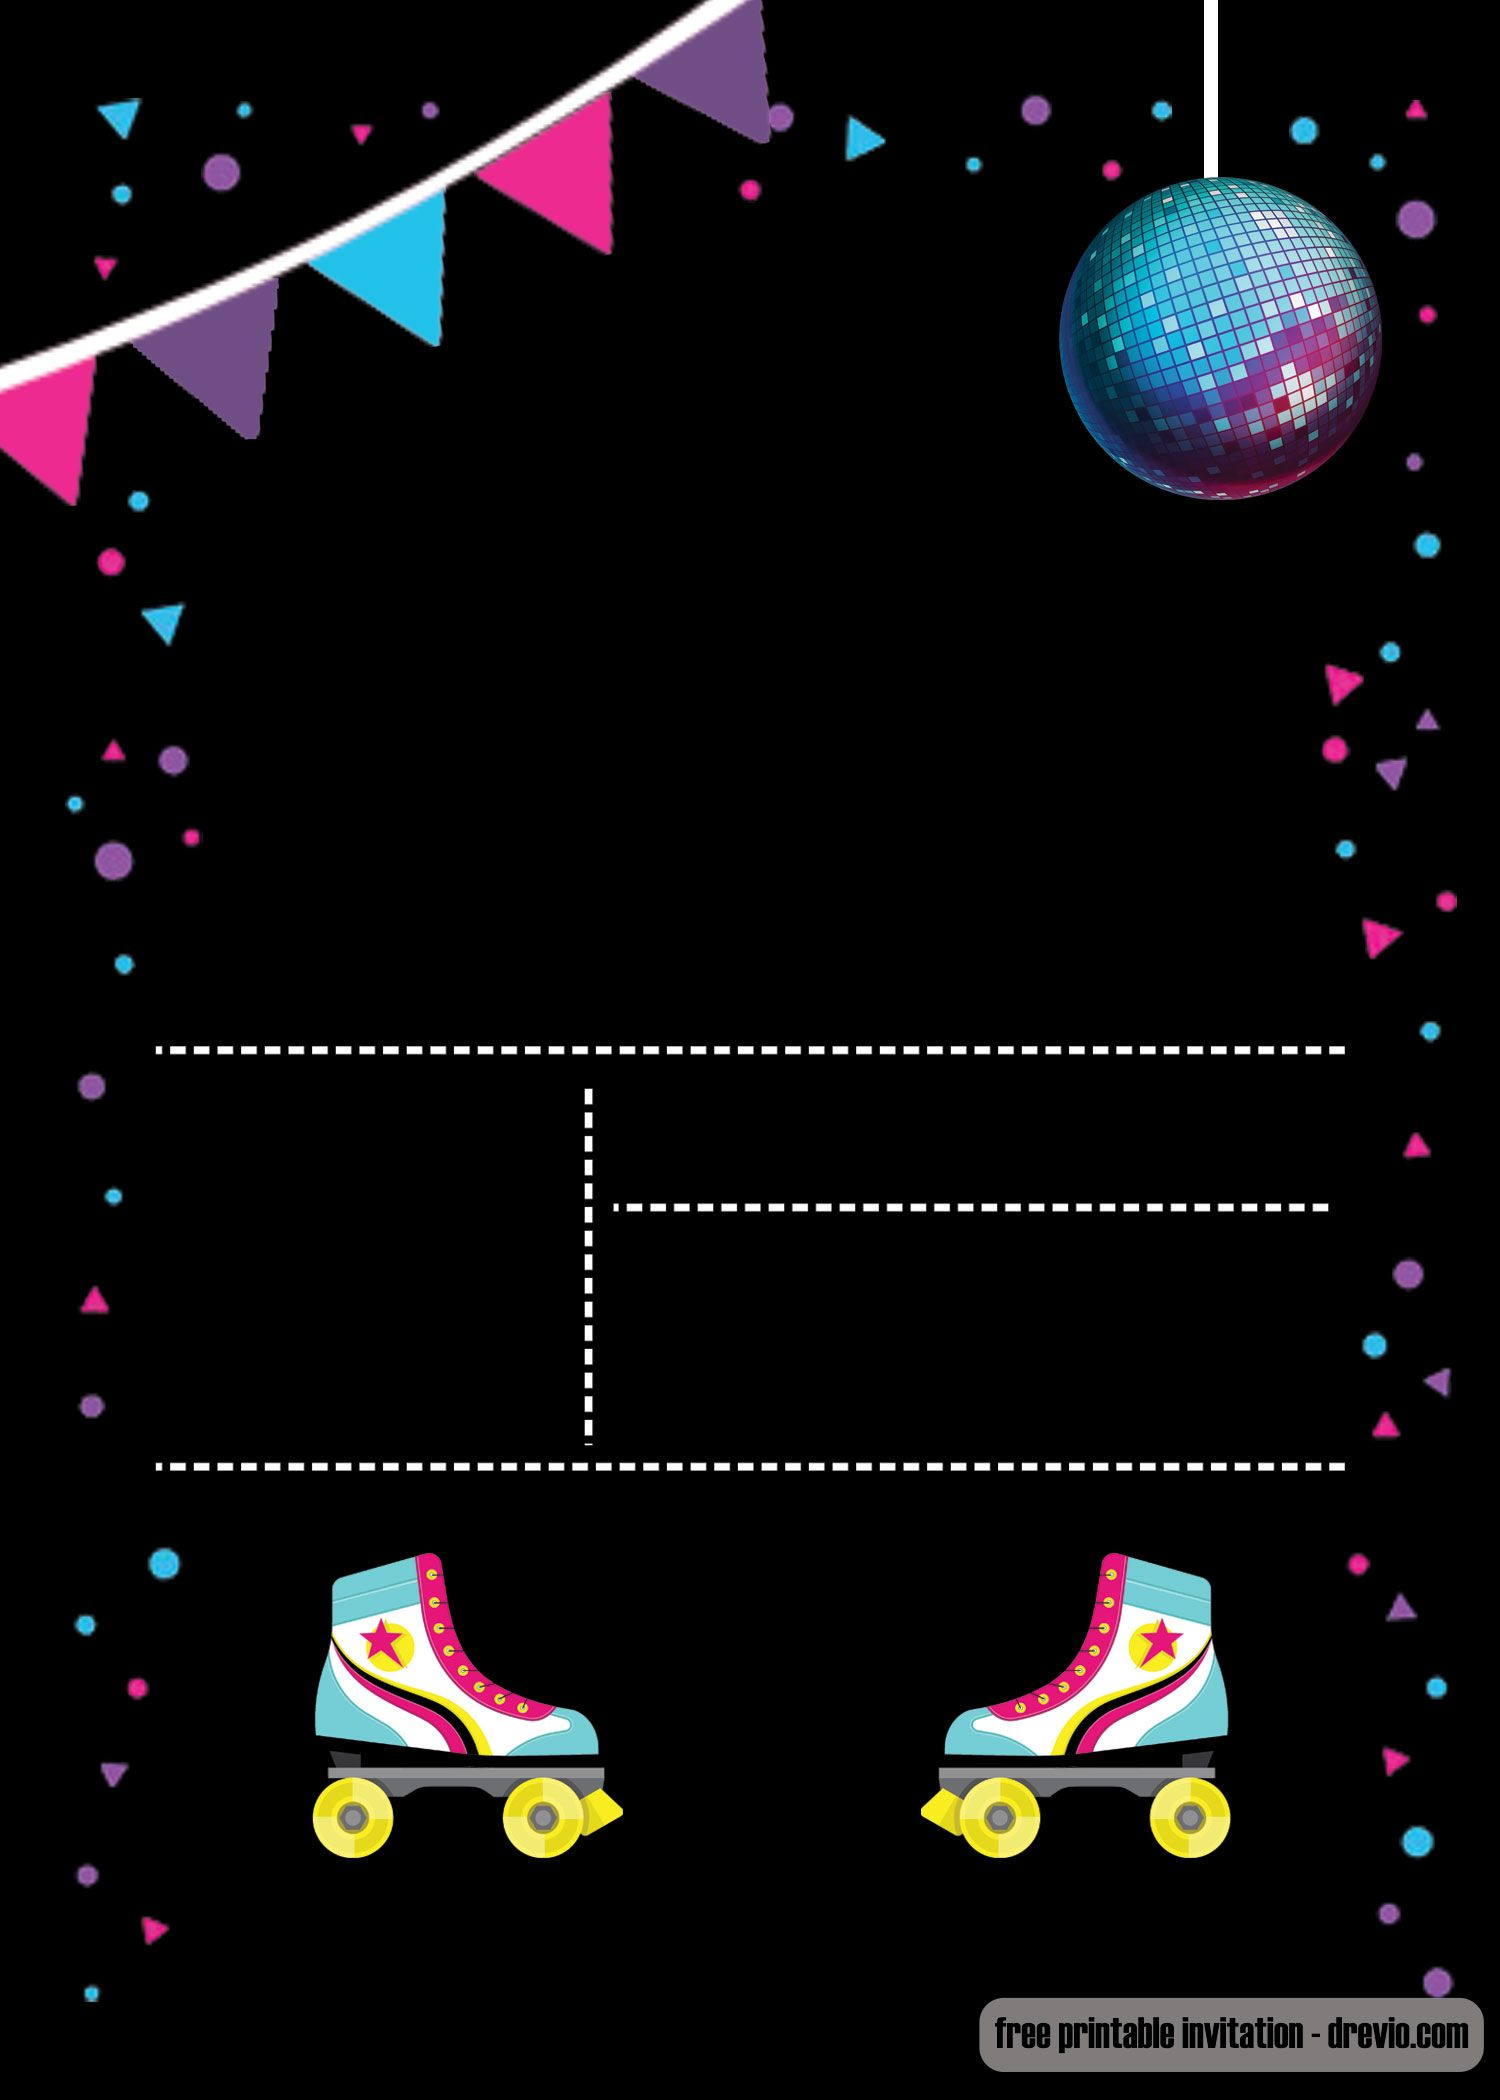 Skating Party Invitation Template Free